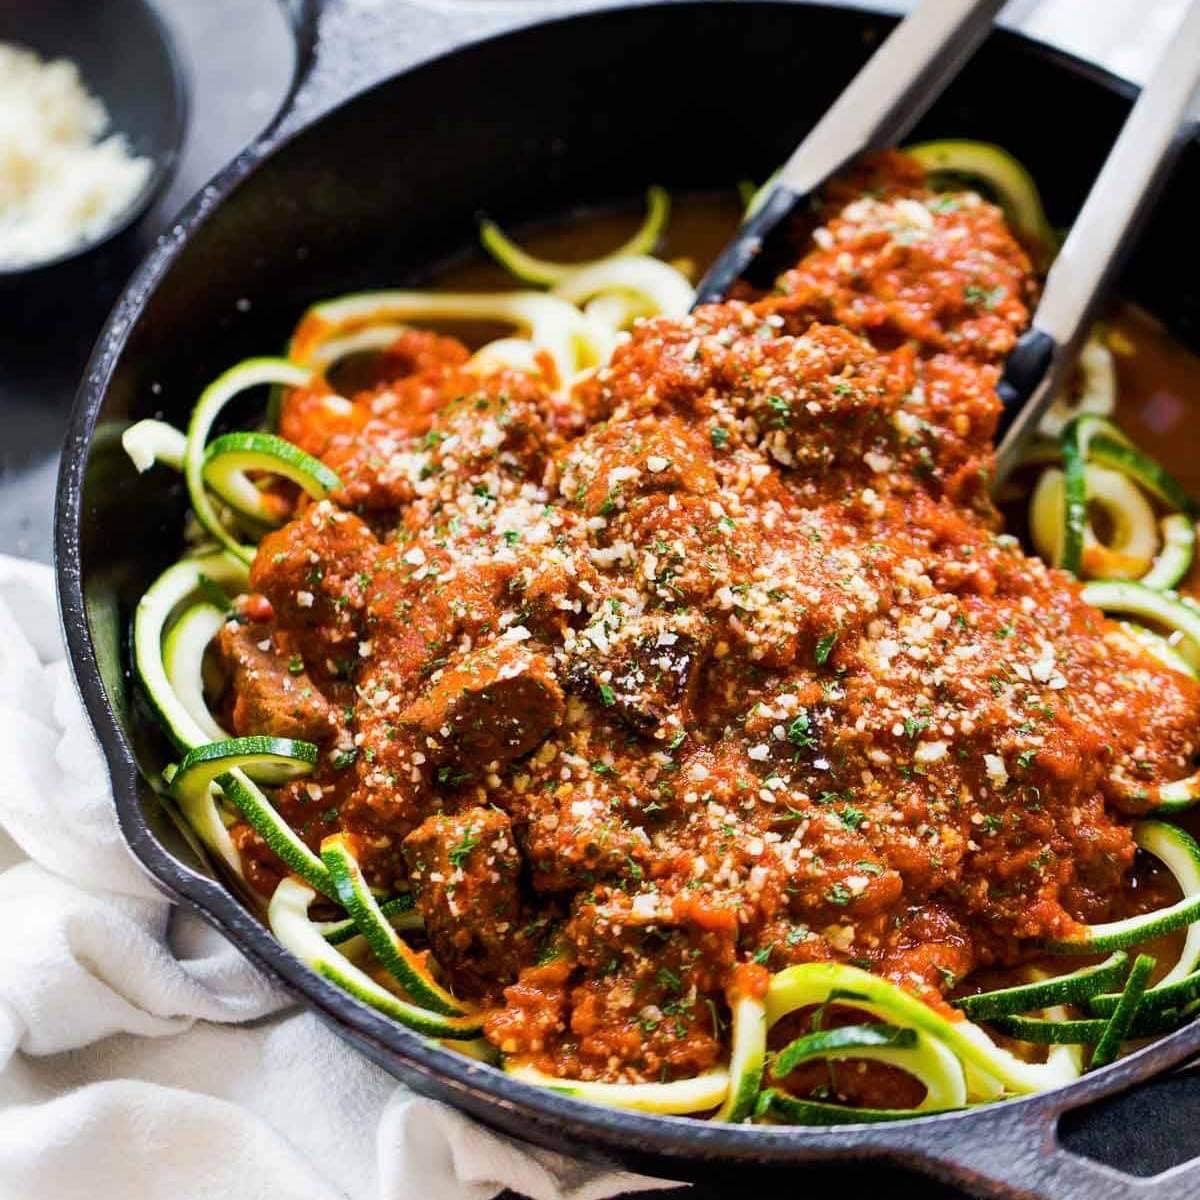 Dinner Friday, January 22 Vodka Sauce Beef With Zucchini Noodles